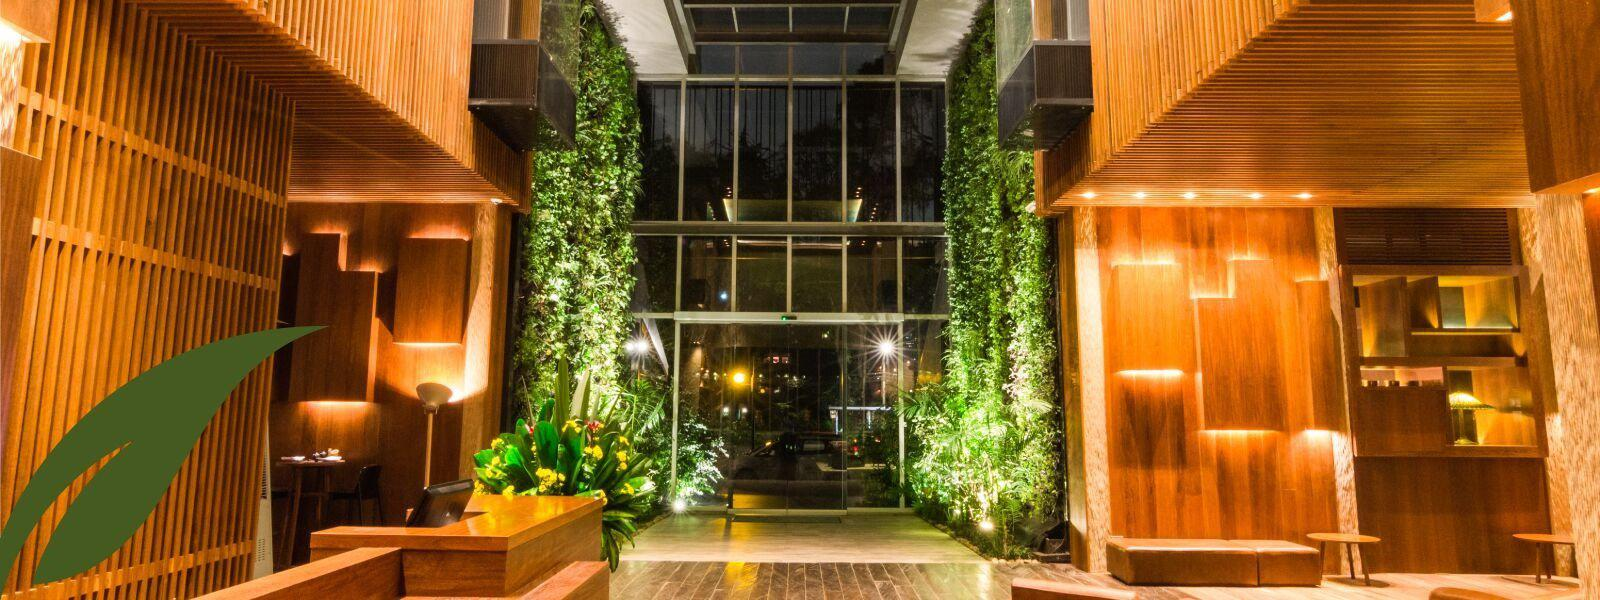 Life and Luxury - Bioxury Hotel - Bogota